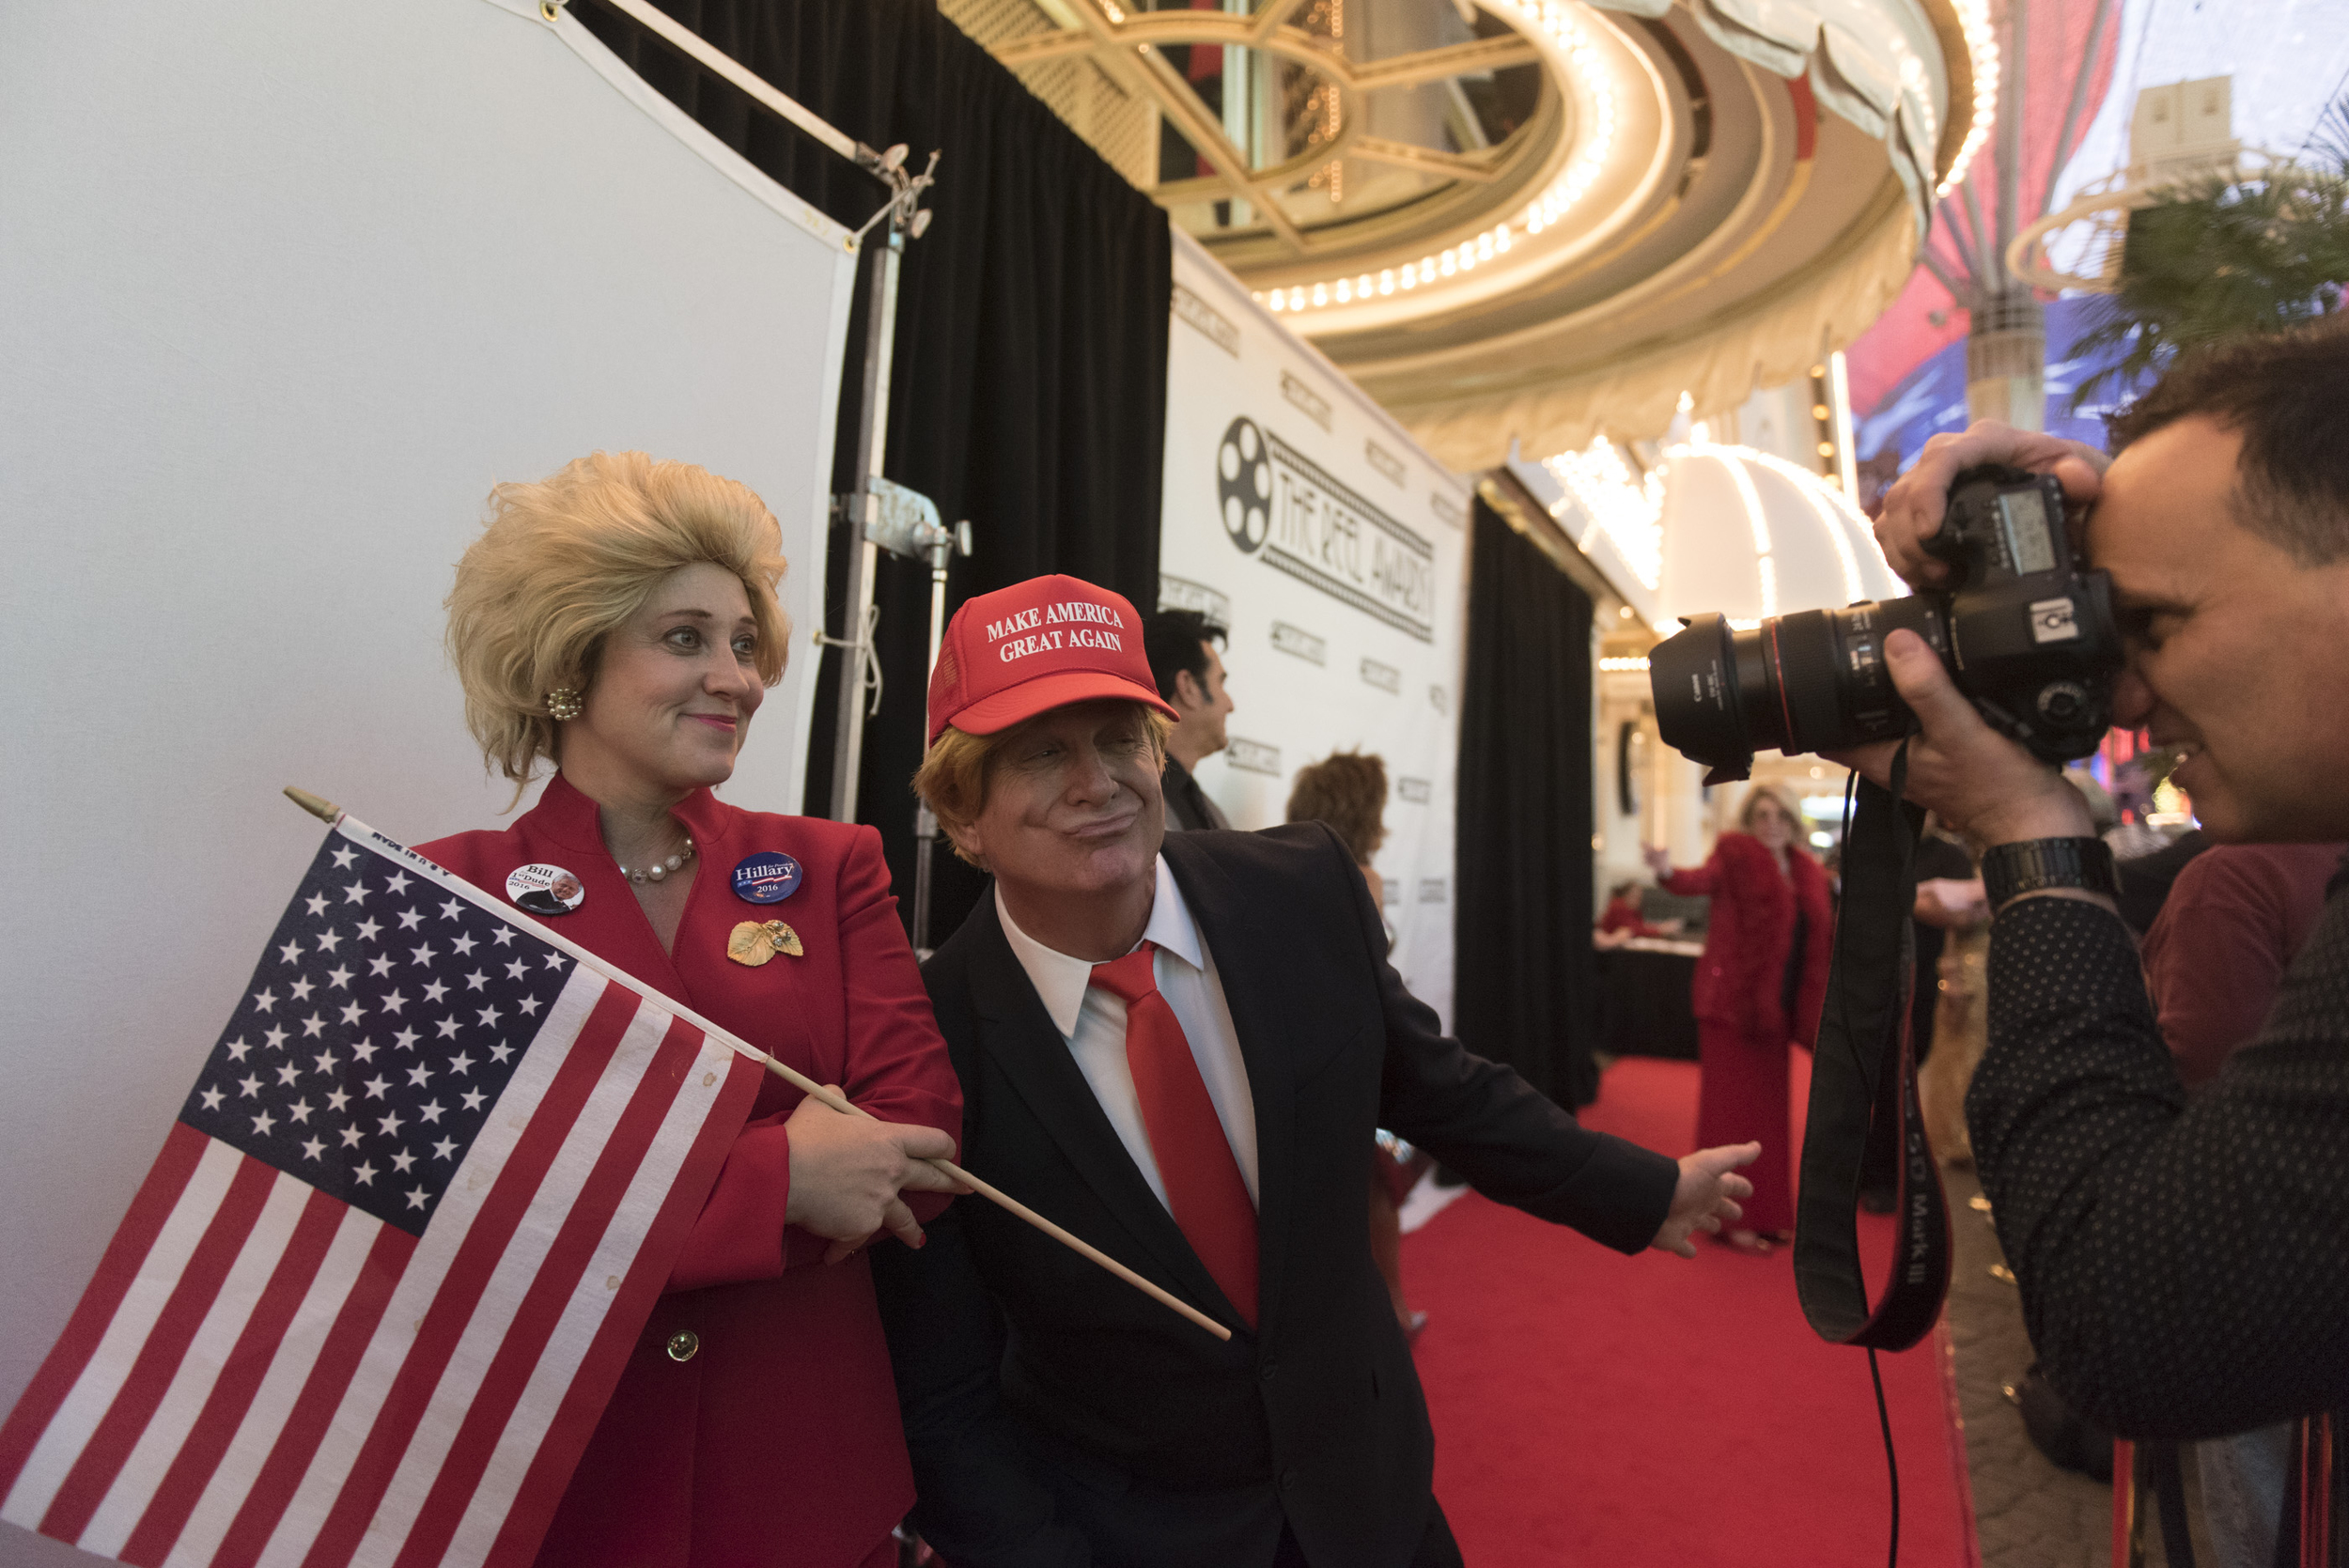 Hillary Clinton impersonator Darci Davis, left, is photobombed by Donald Trump impersonator Kevin Hartman, center, as  Roger Hutton takes a photo on the red carpet event ahead of The Reel Awards at Golden Nugget Hotel Casino in Las Vegas Monday, Feb. 22, 2016. The Reel Awards are meant to be a humorous tribute to the real Academy Awards. Jason Ogulnik/Las Vegas Review-Journal